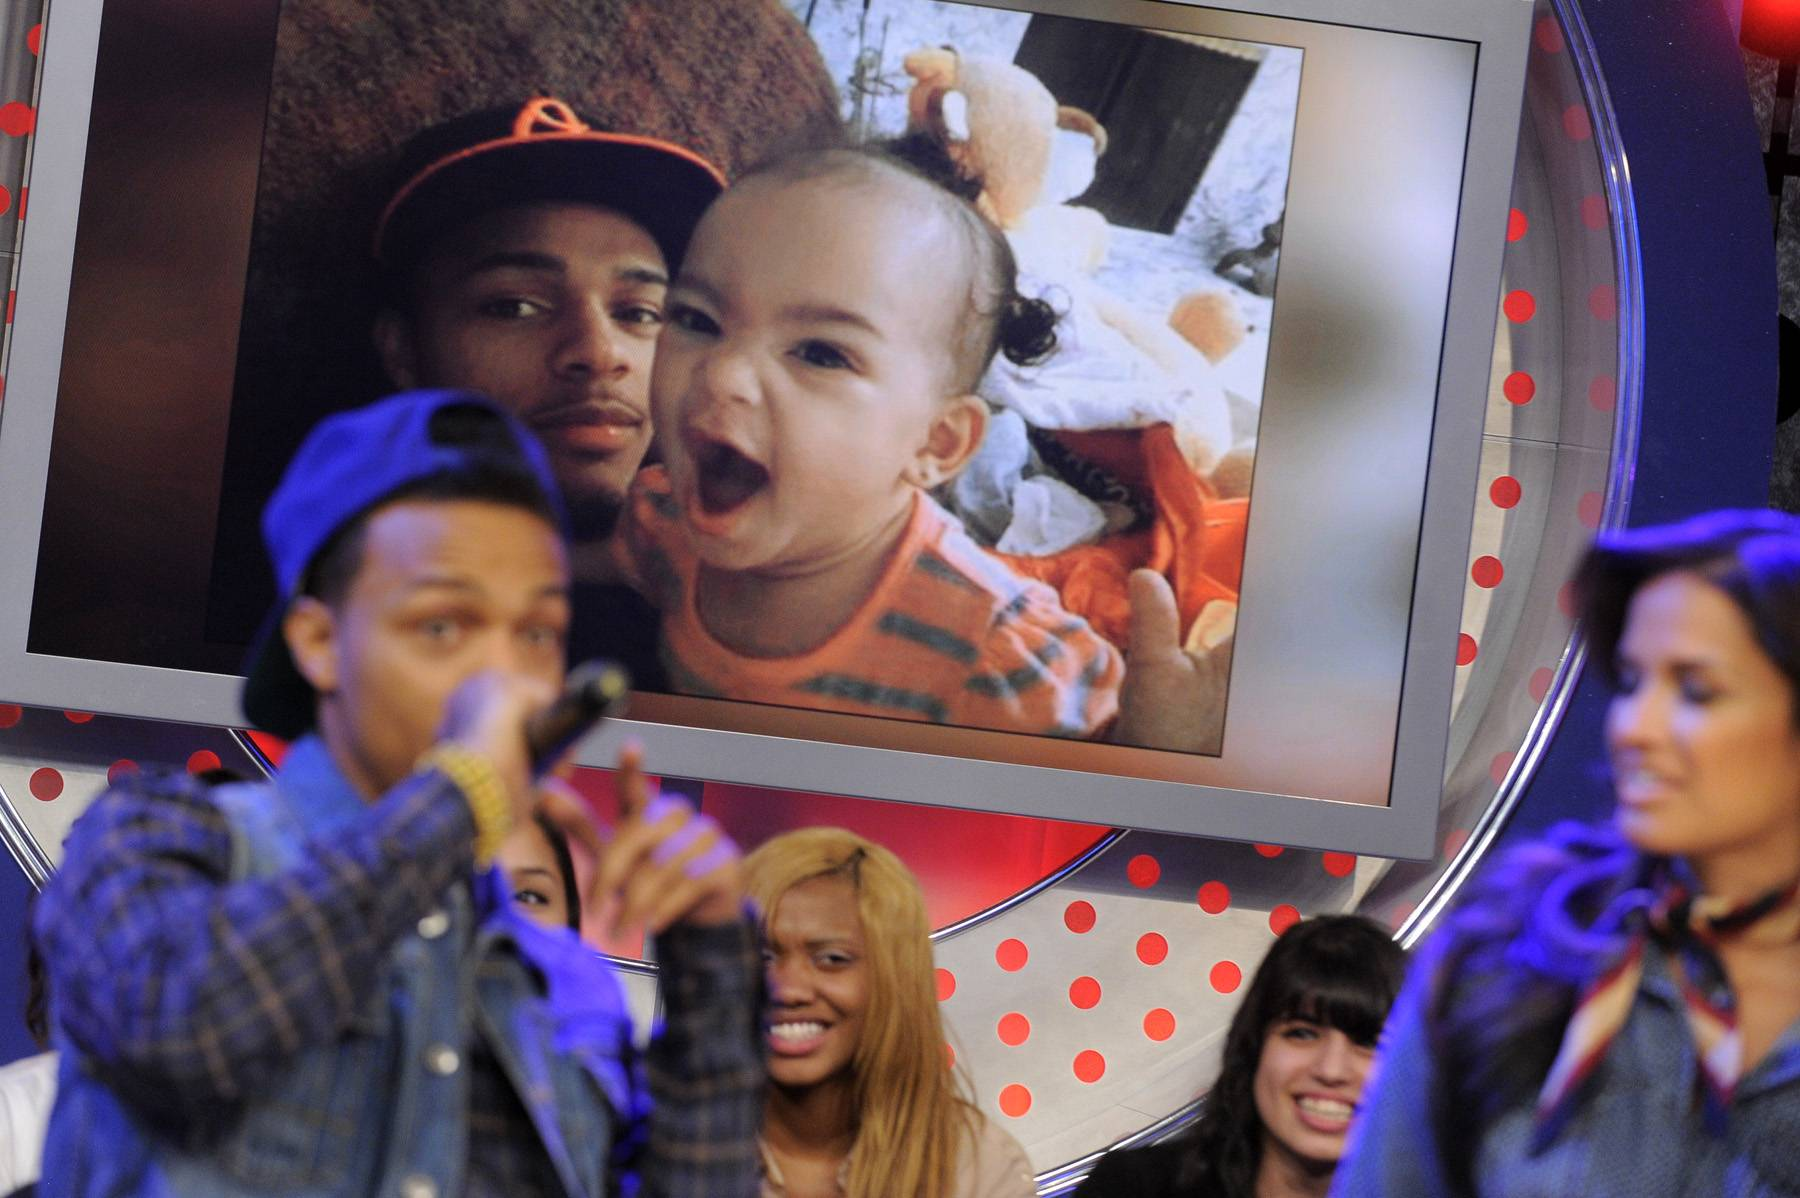 I Love My Baby - Bow Wow, at 106 & Park, tells the audience how having a daughter has made him kinder to women. January 23, 2012. (Photo: John Ricard / BET)